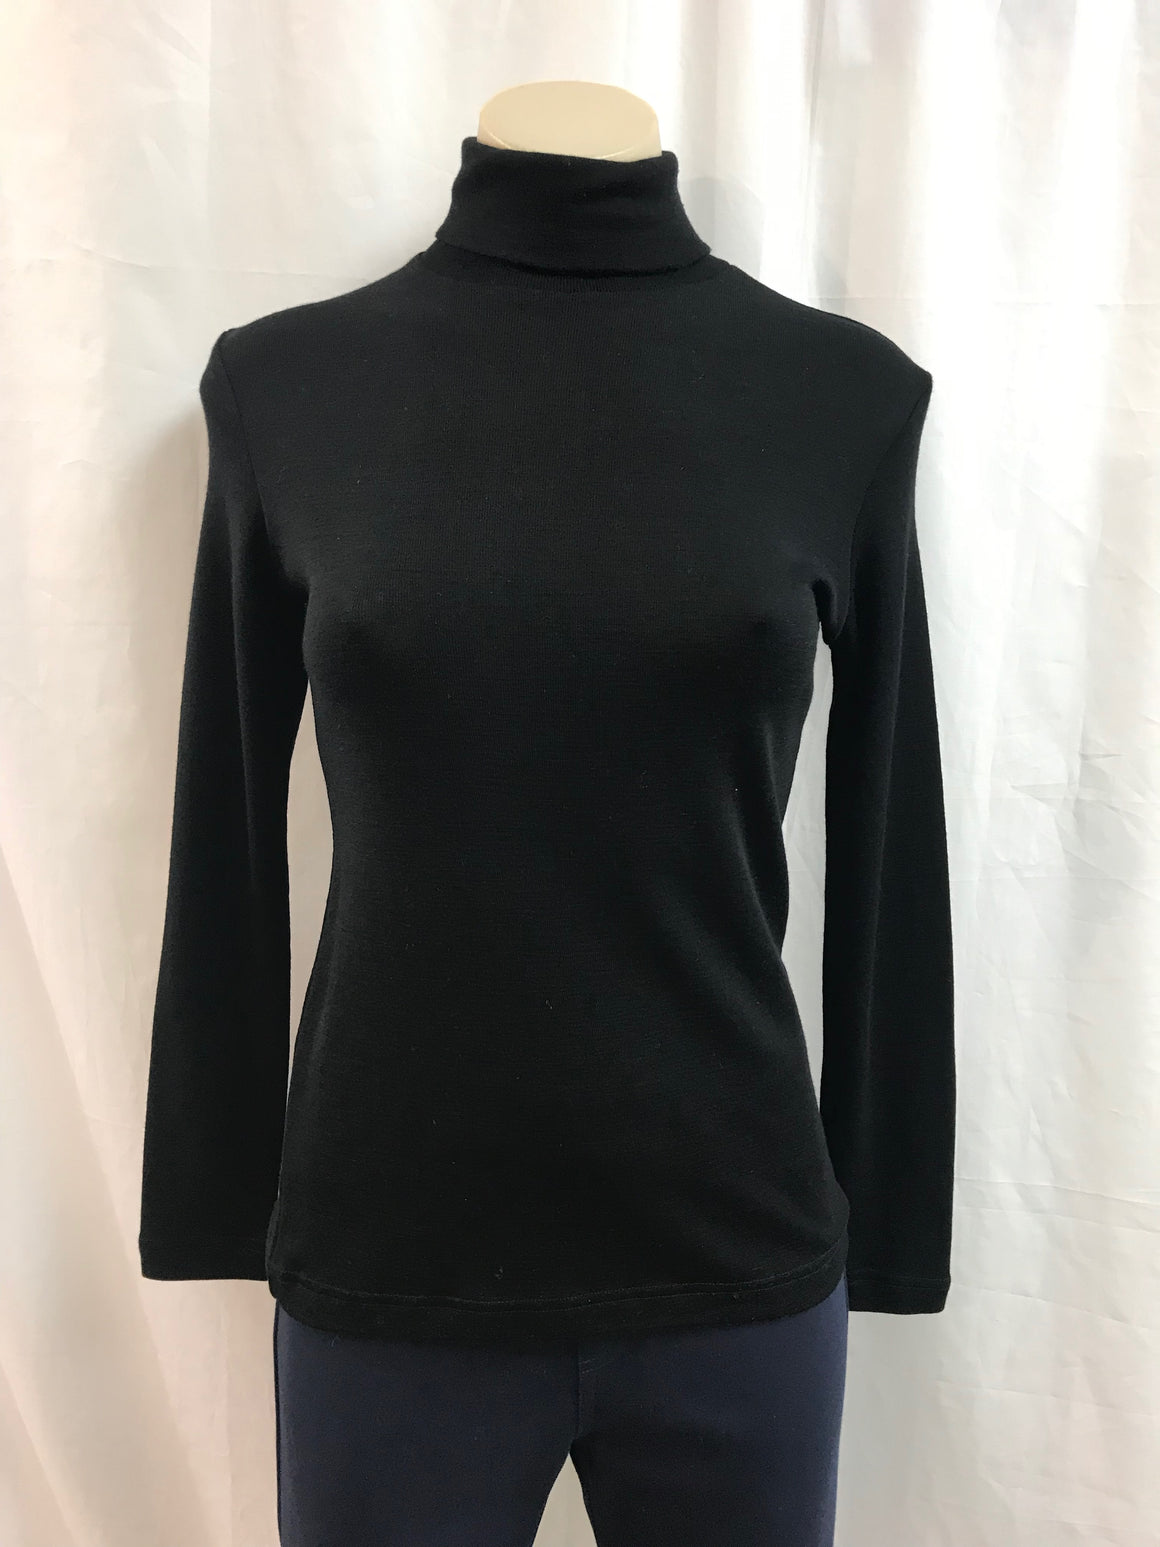 Bay Road Polo Neck - Black - Fashion Focus